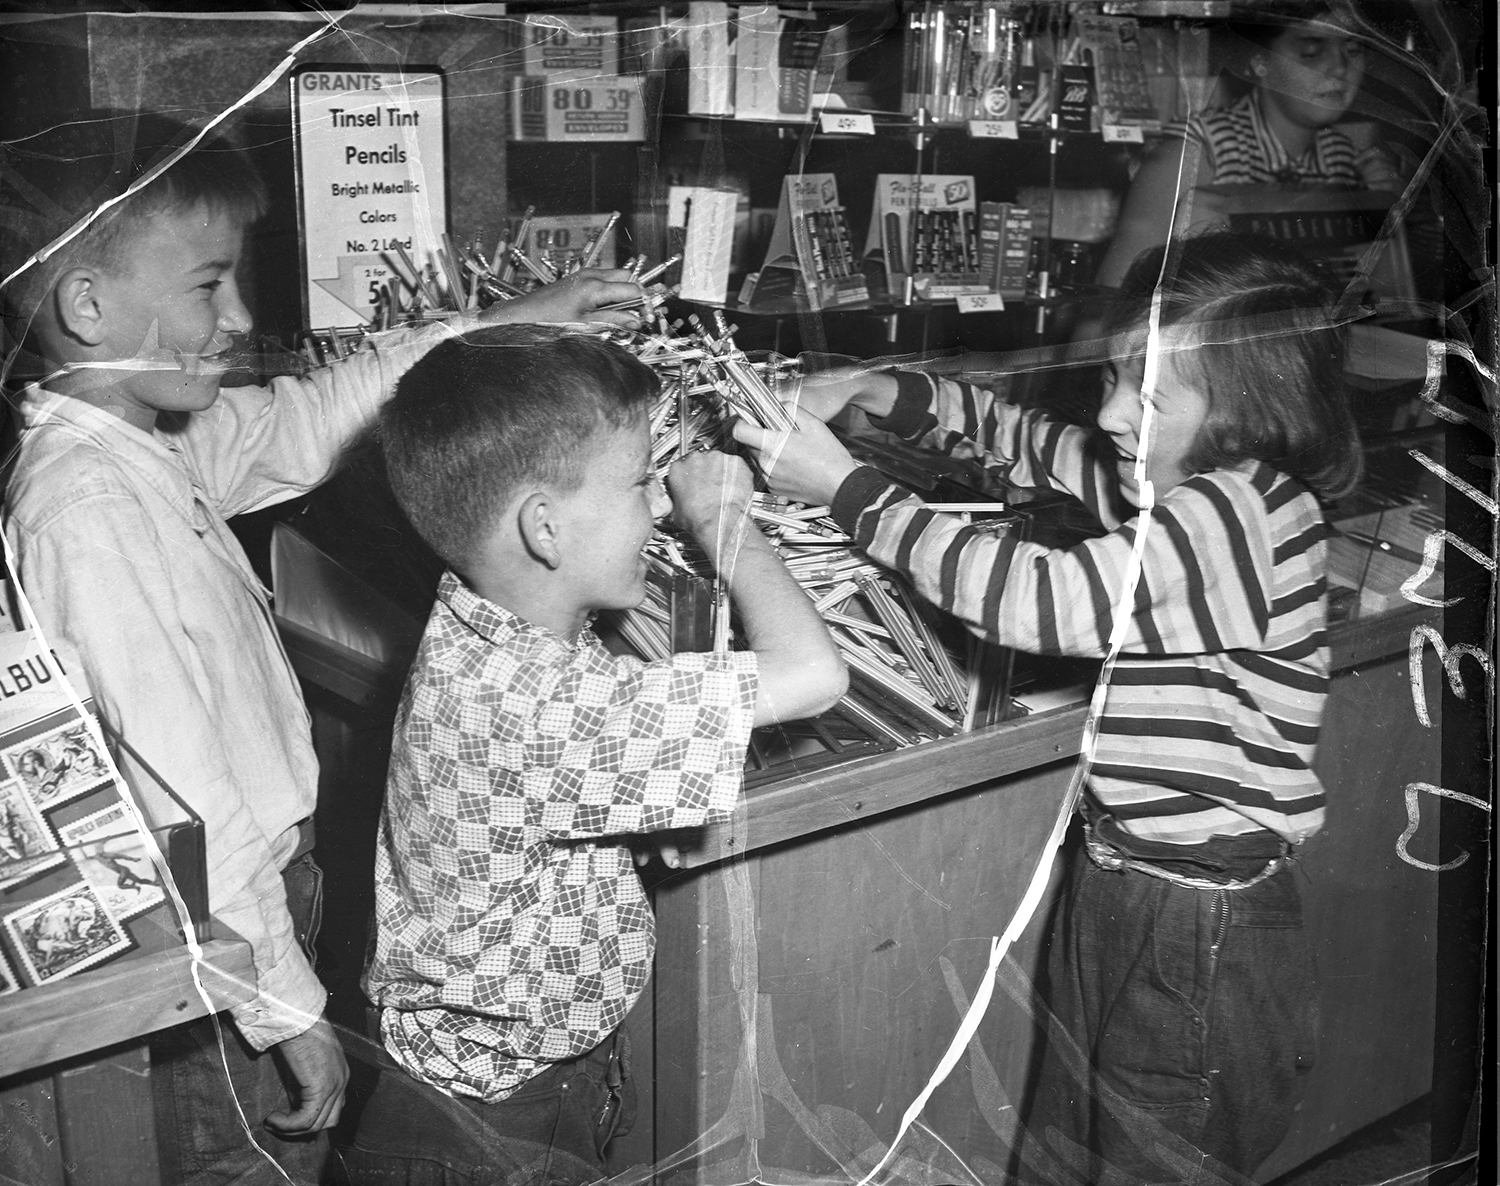 Children buying pencils at W.T. Grant Company Department store, 1953. From the Portland Public Library archival collection of Portland Press Herald, Maine Sunday Telegram and Evening Express photos.